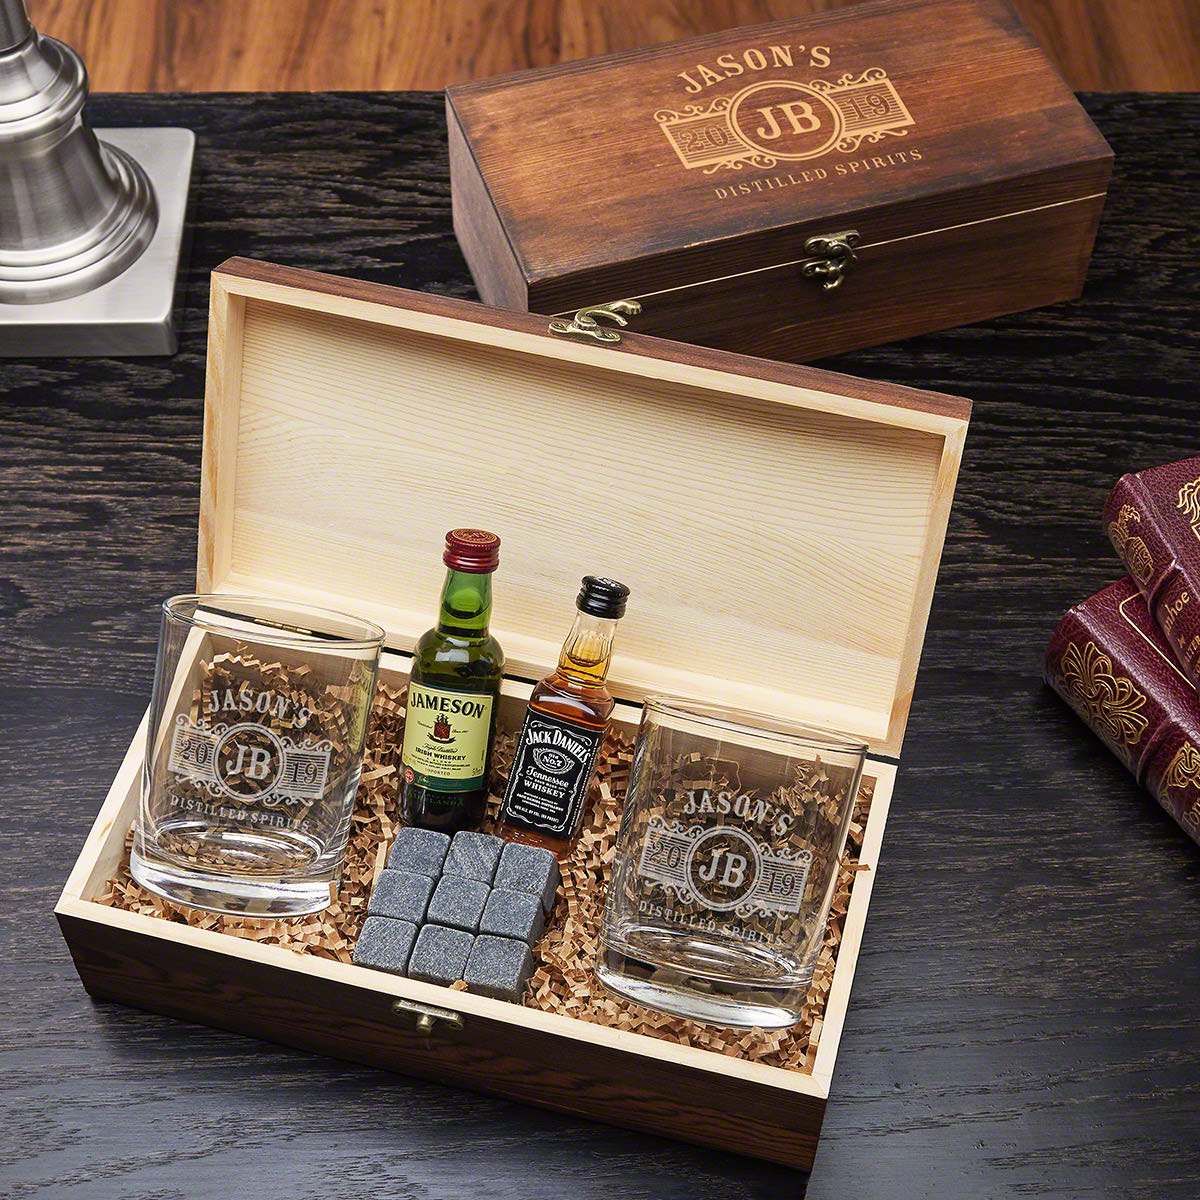 Marquee Engraved Glasses and Stones Gift Box Set for Whiskey Lovers